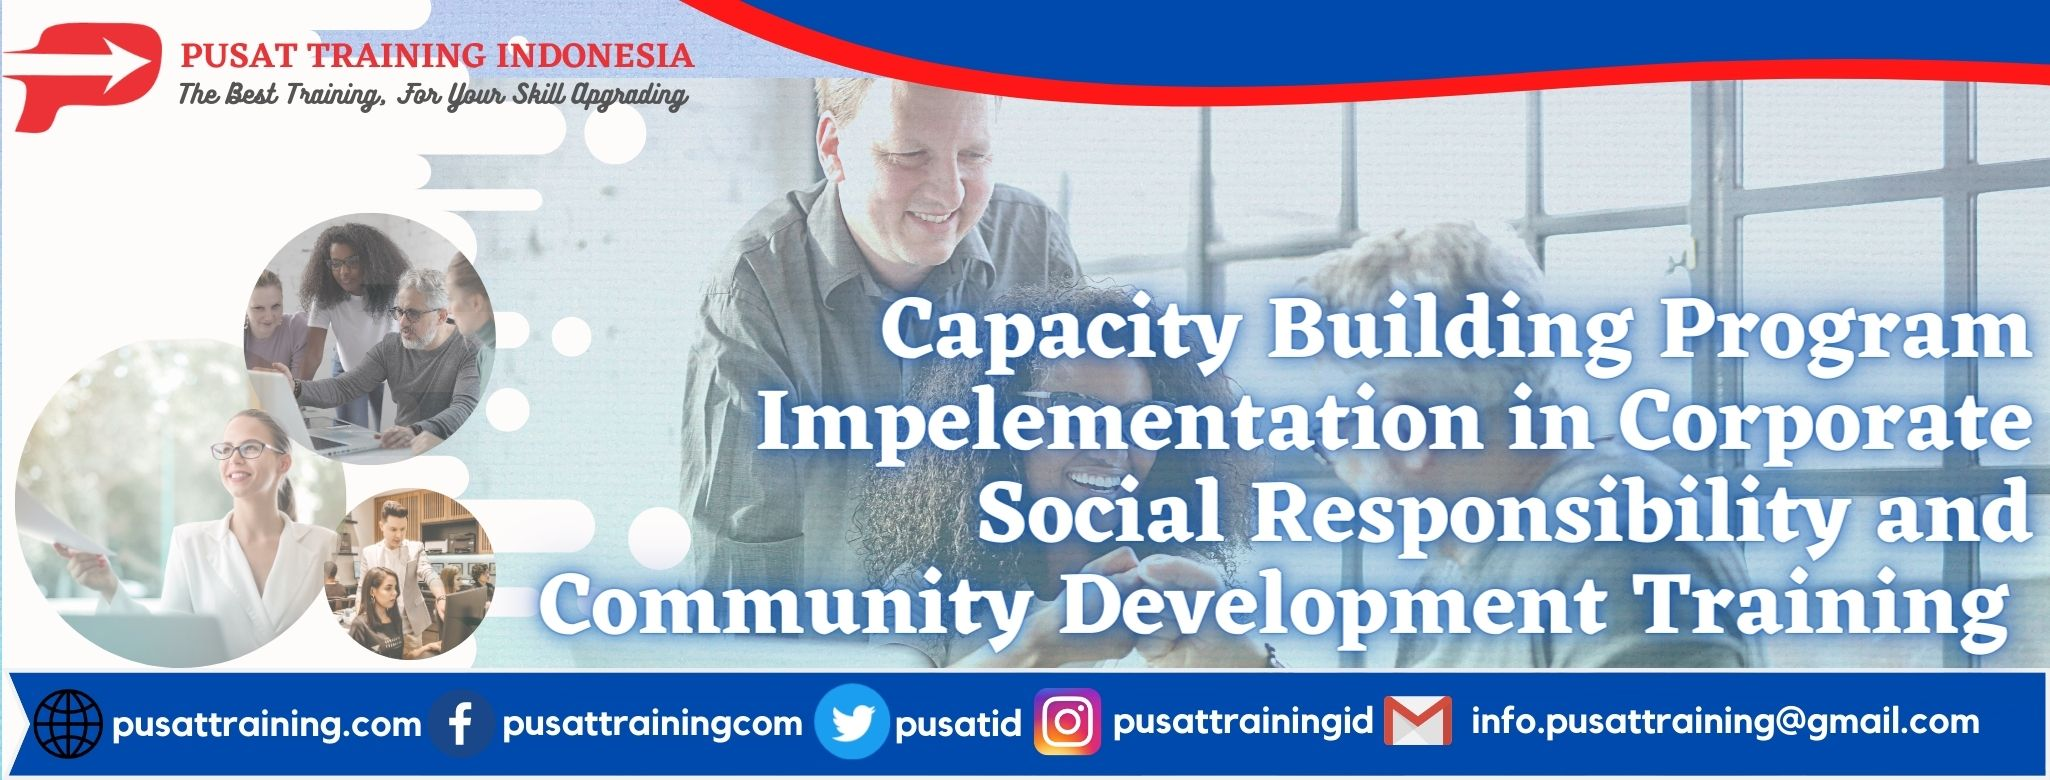 Capacity-Building-Program-Impelementation-in-Corporate-Social-Responsibility-and-Community-Development-Training